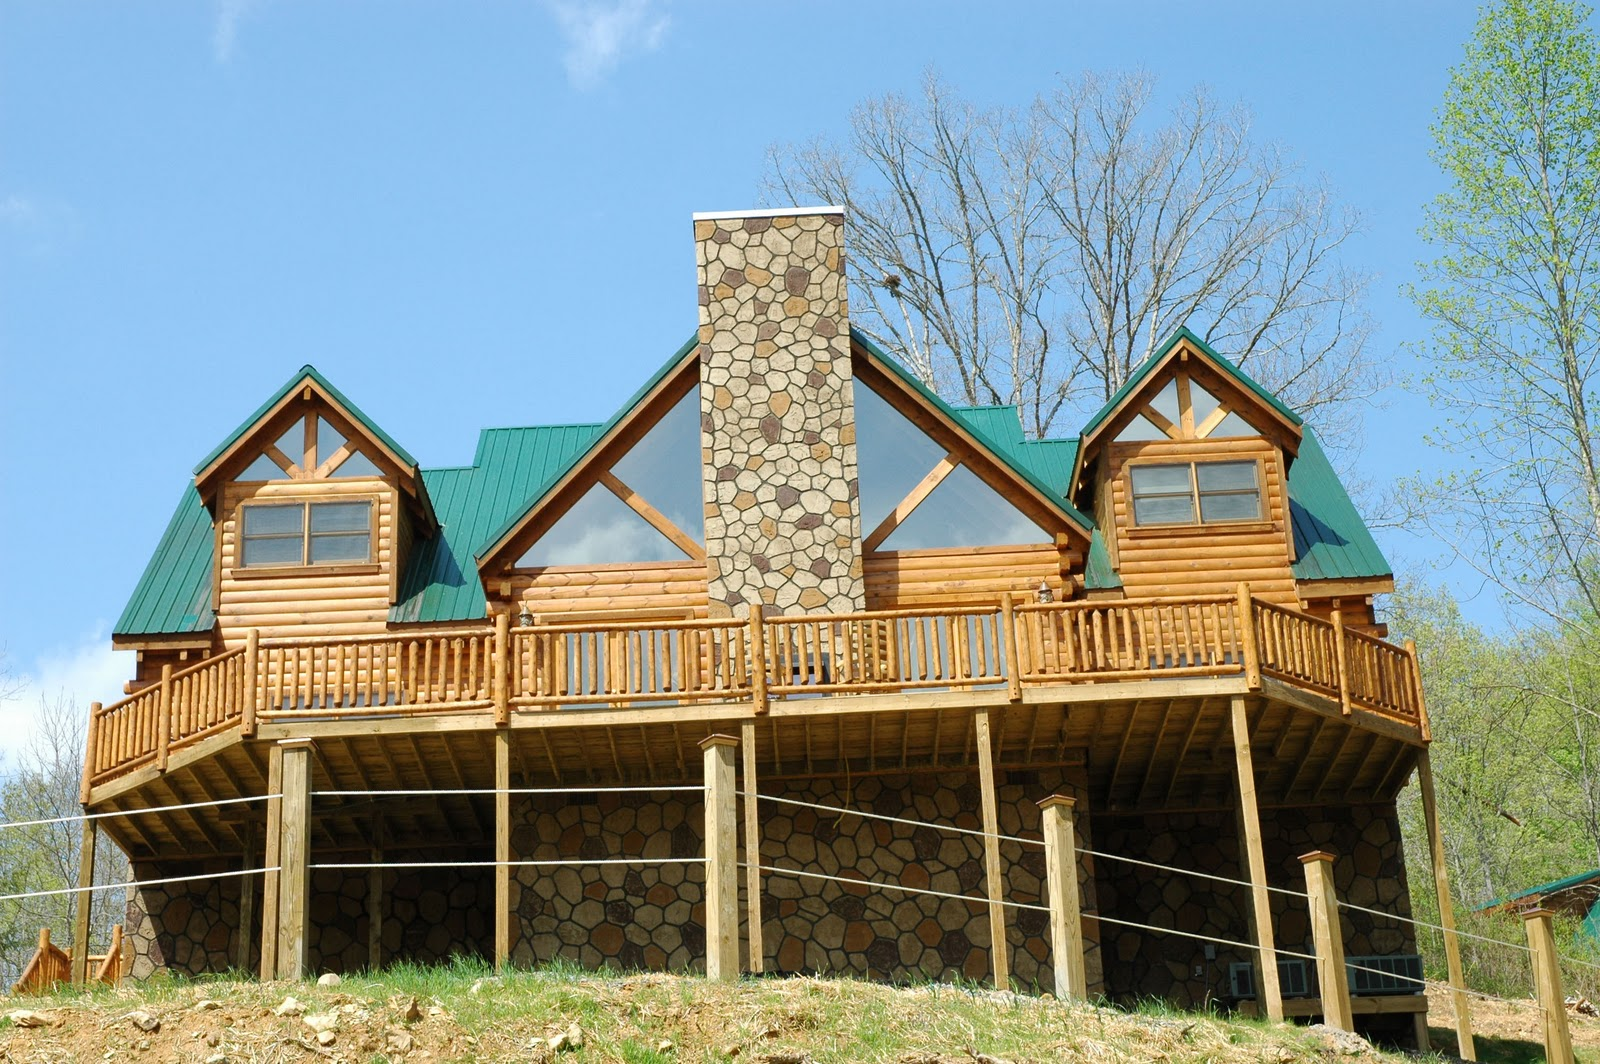 cabins pools sale vction with gatlinburg mountins in indoor foreclosure by cbin owner rent affordable for the smokies sevierville rustic